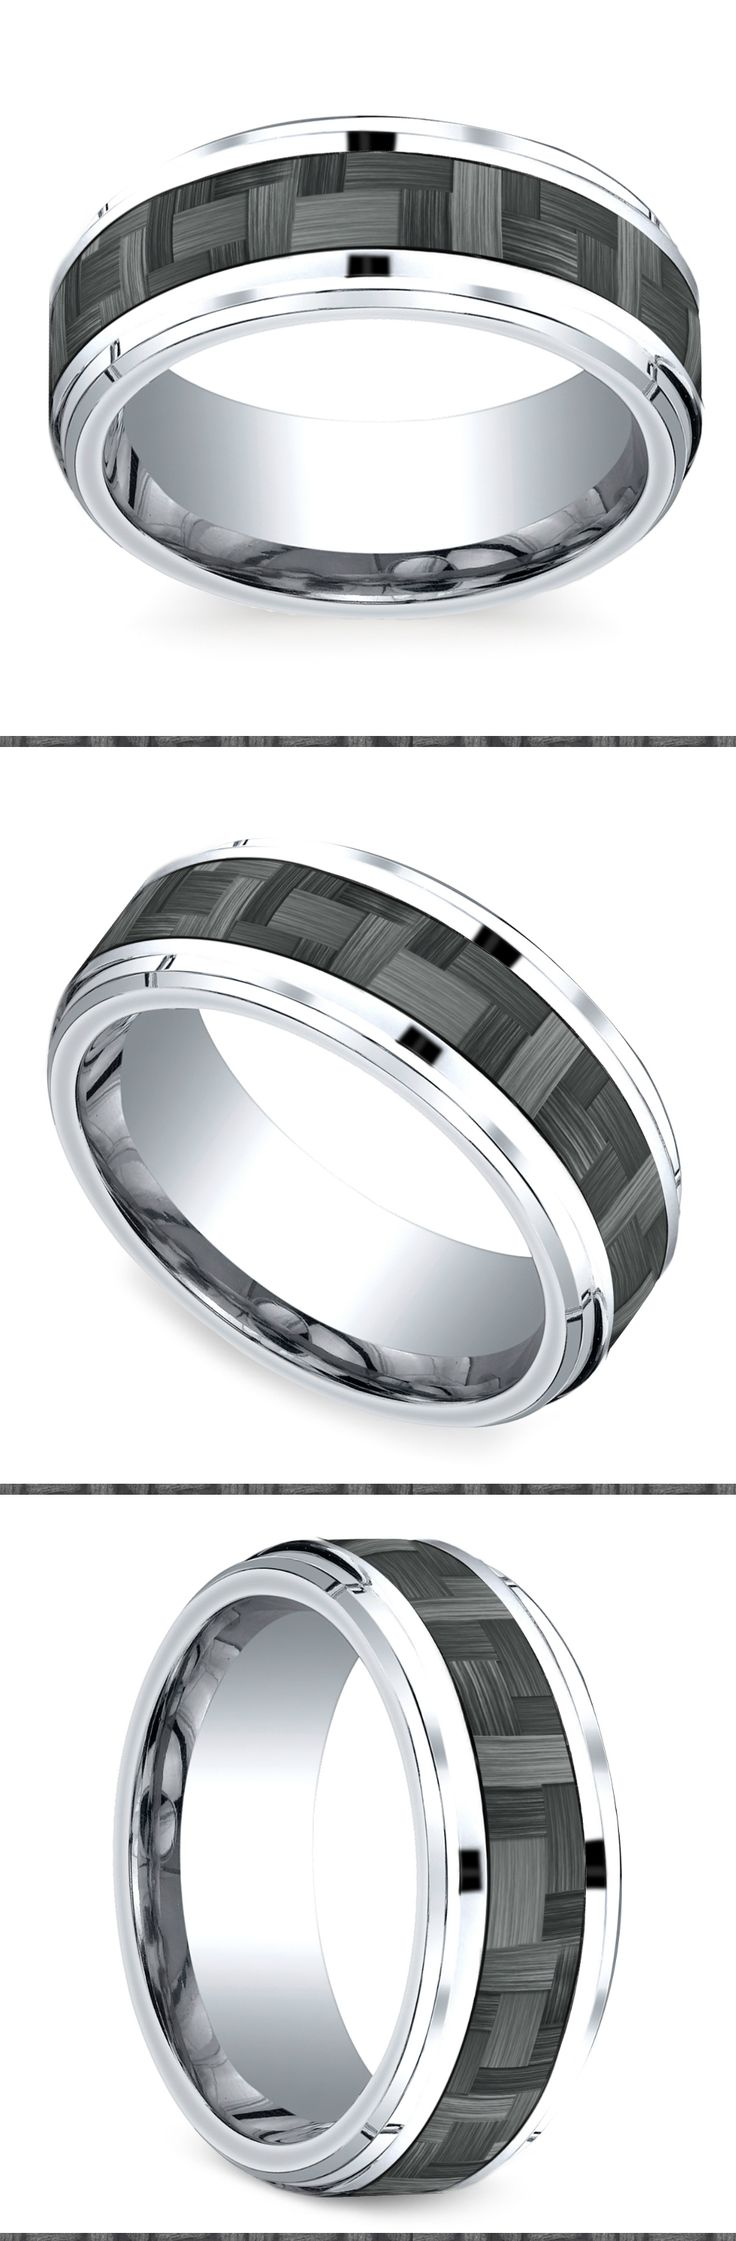 this exquisite cobalt mens wedding band is 9 millimeters wide and features a drop beveled edge - Wedding Ring Pics